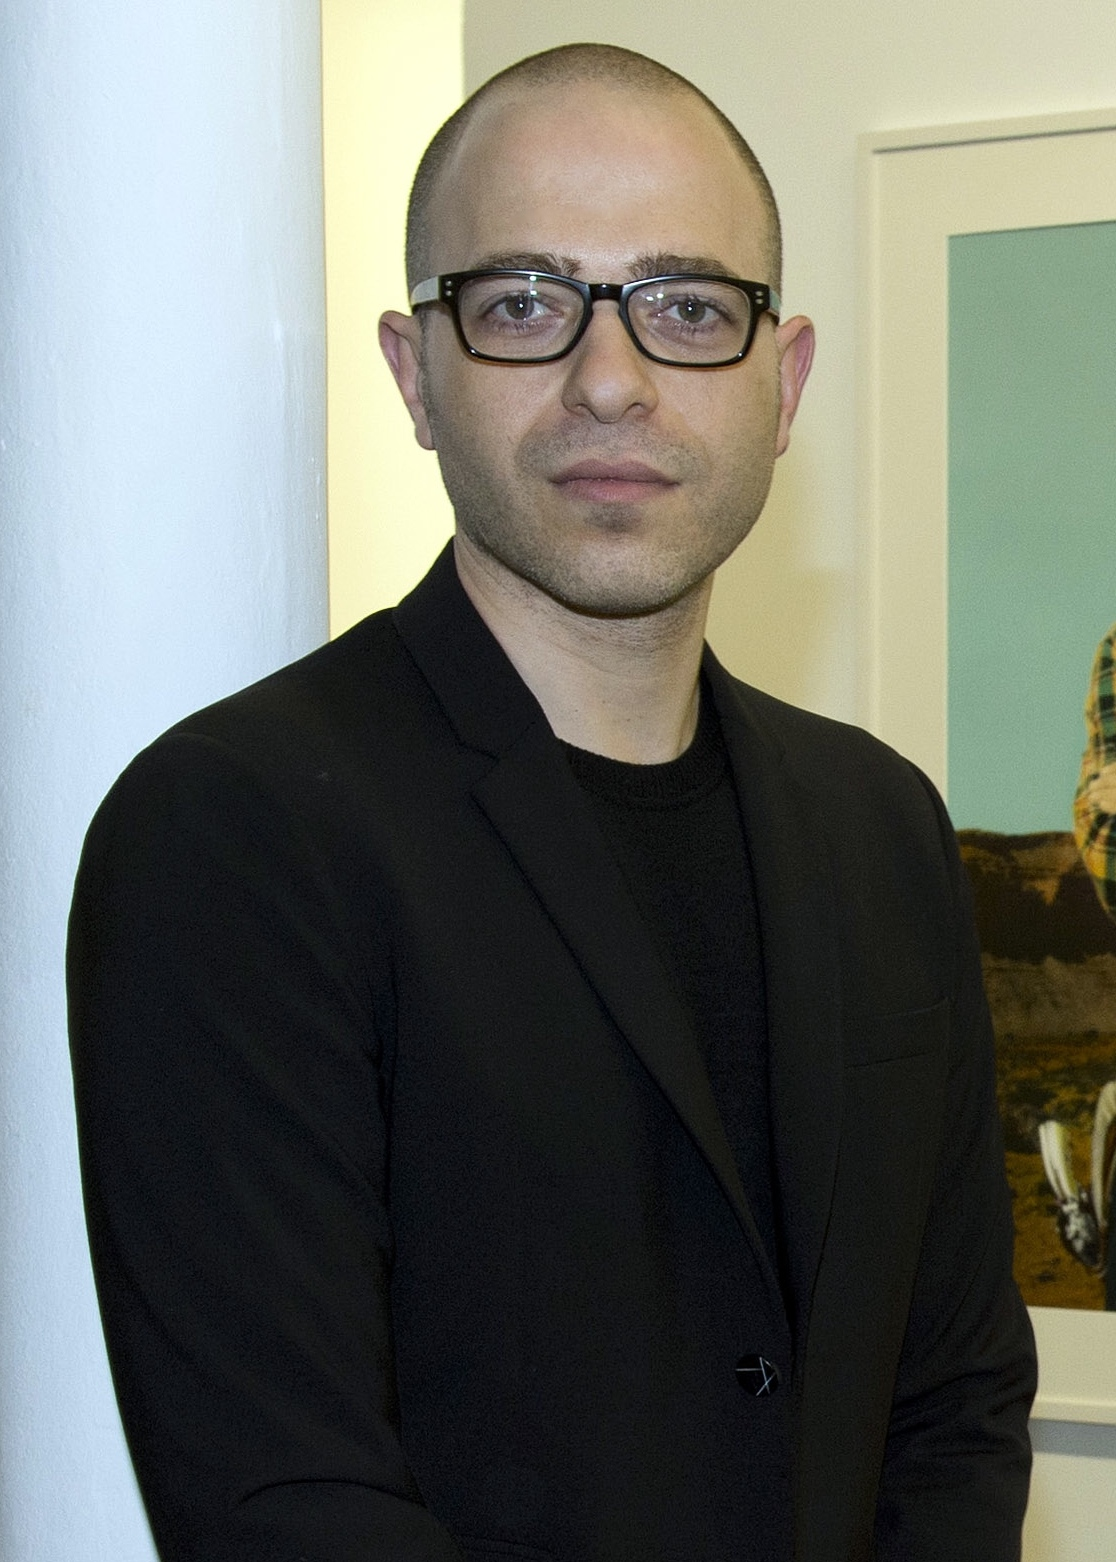 Image of Youssef Nabil from Wikidata